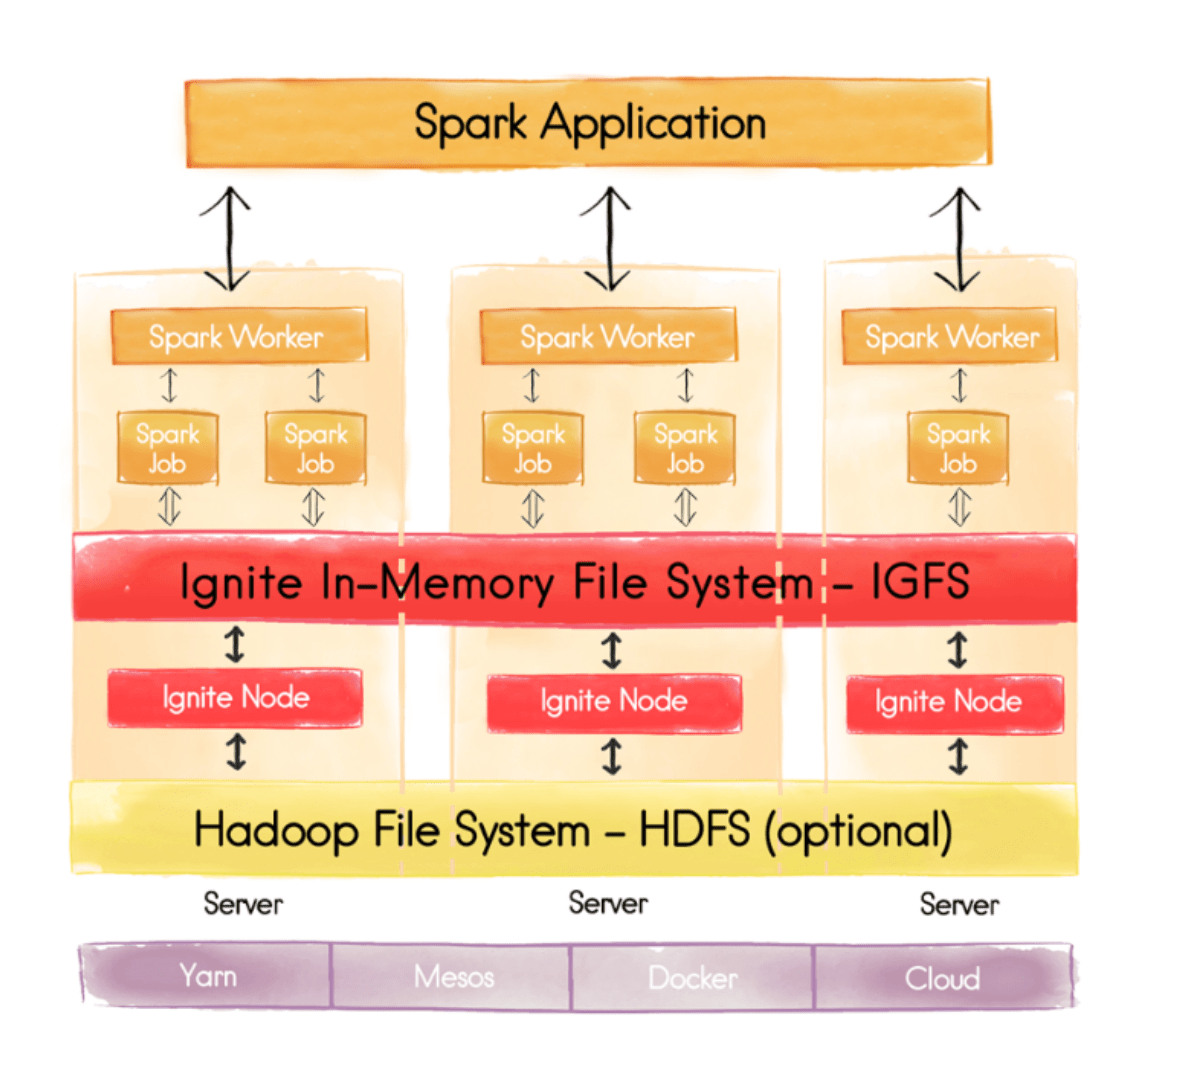 Ignite In-Memory Dile System IGFS